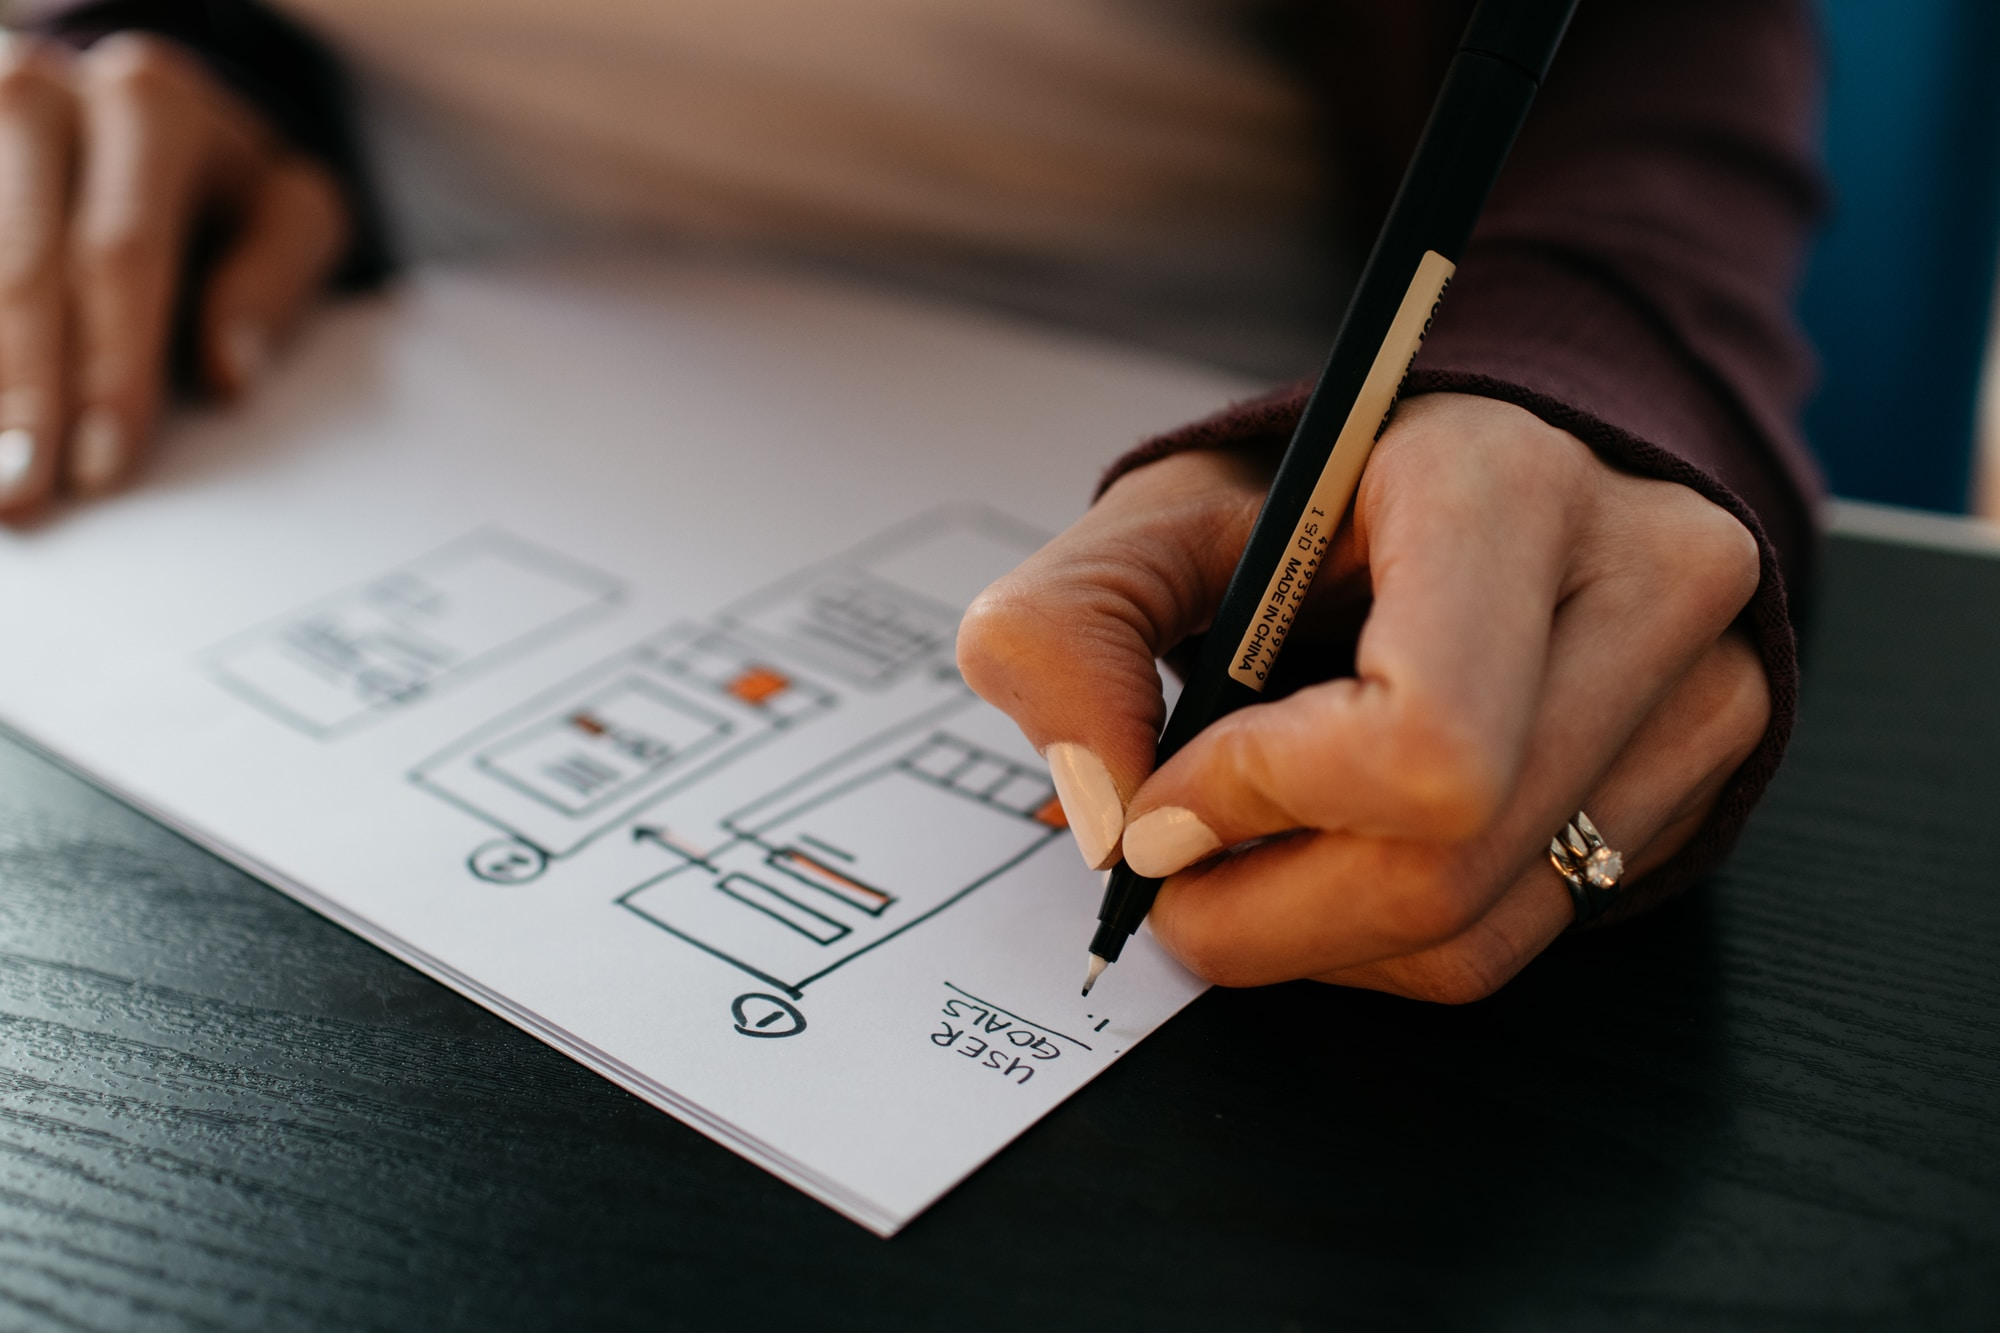 A woman sketching app wireframes on paper